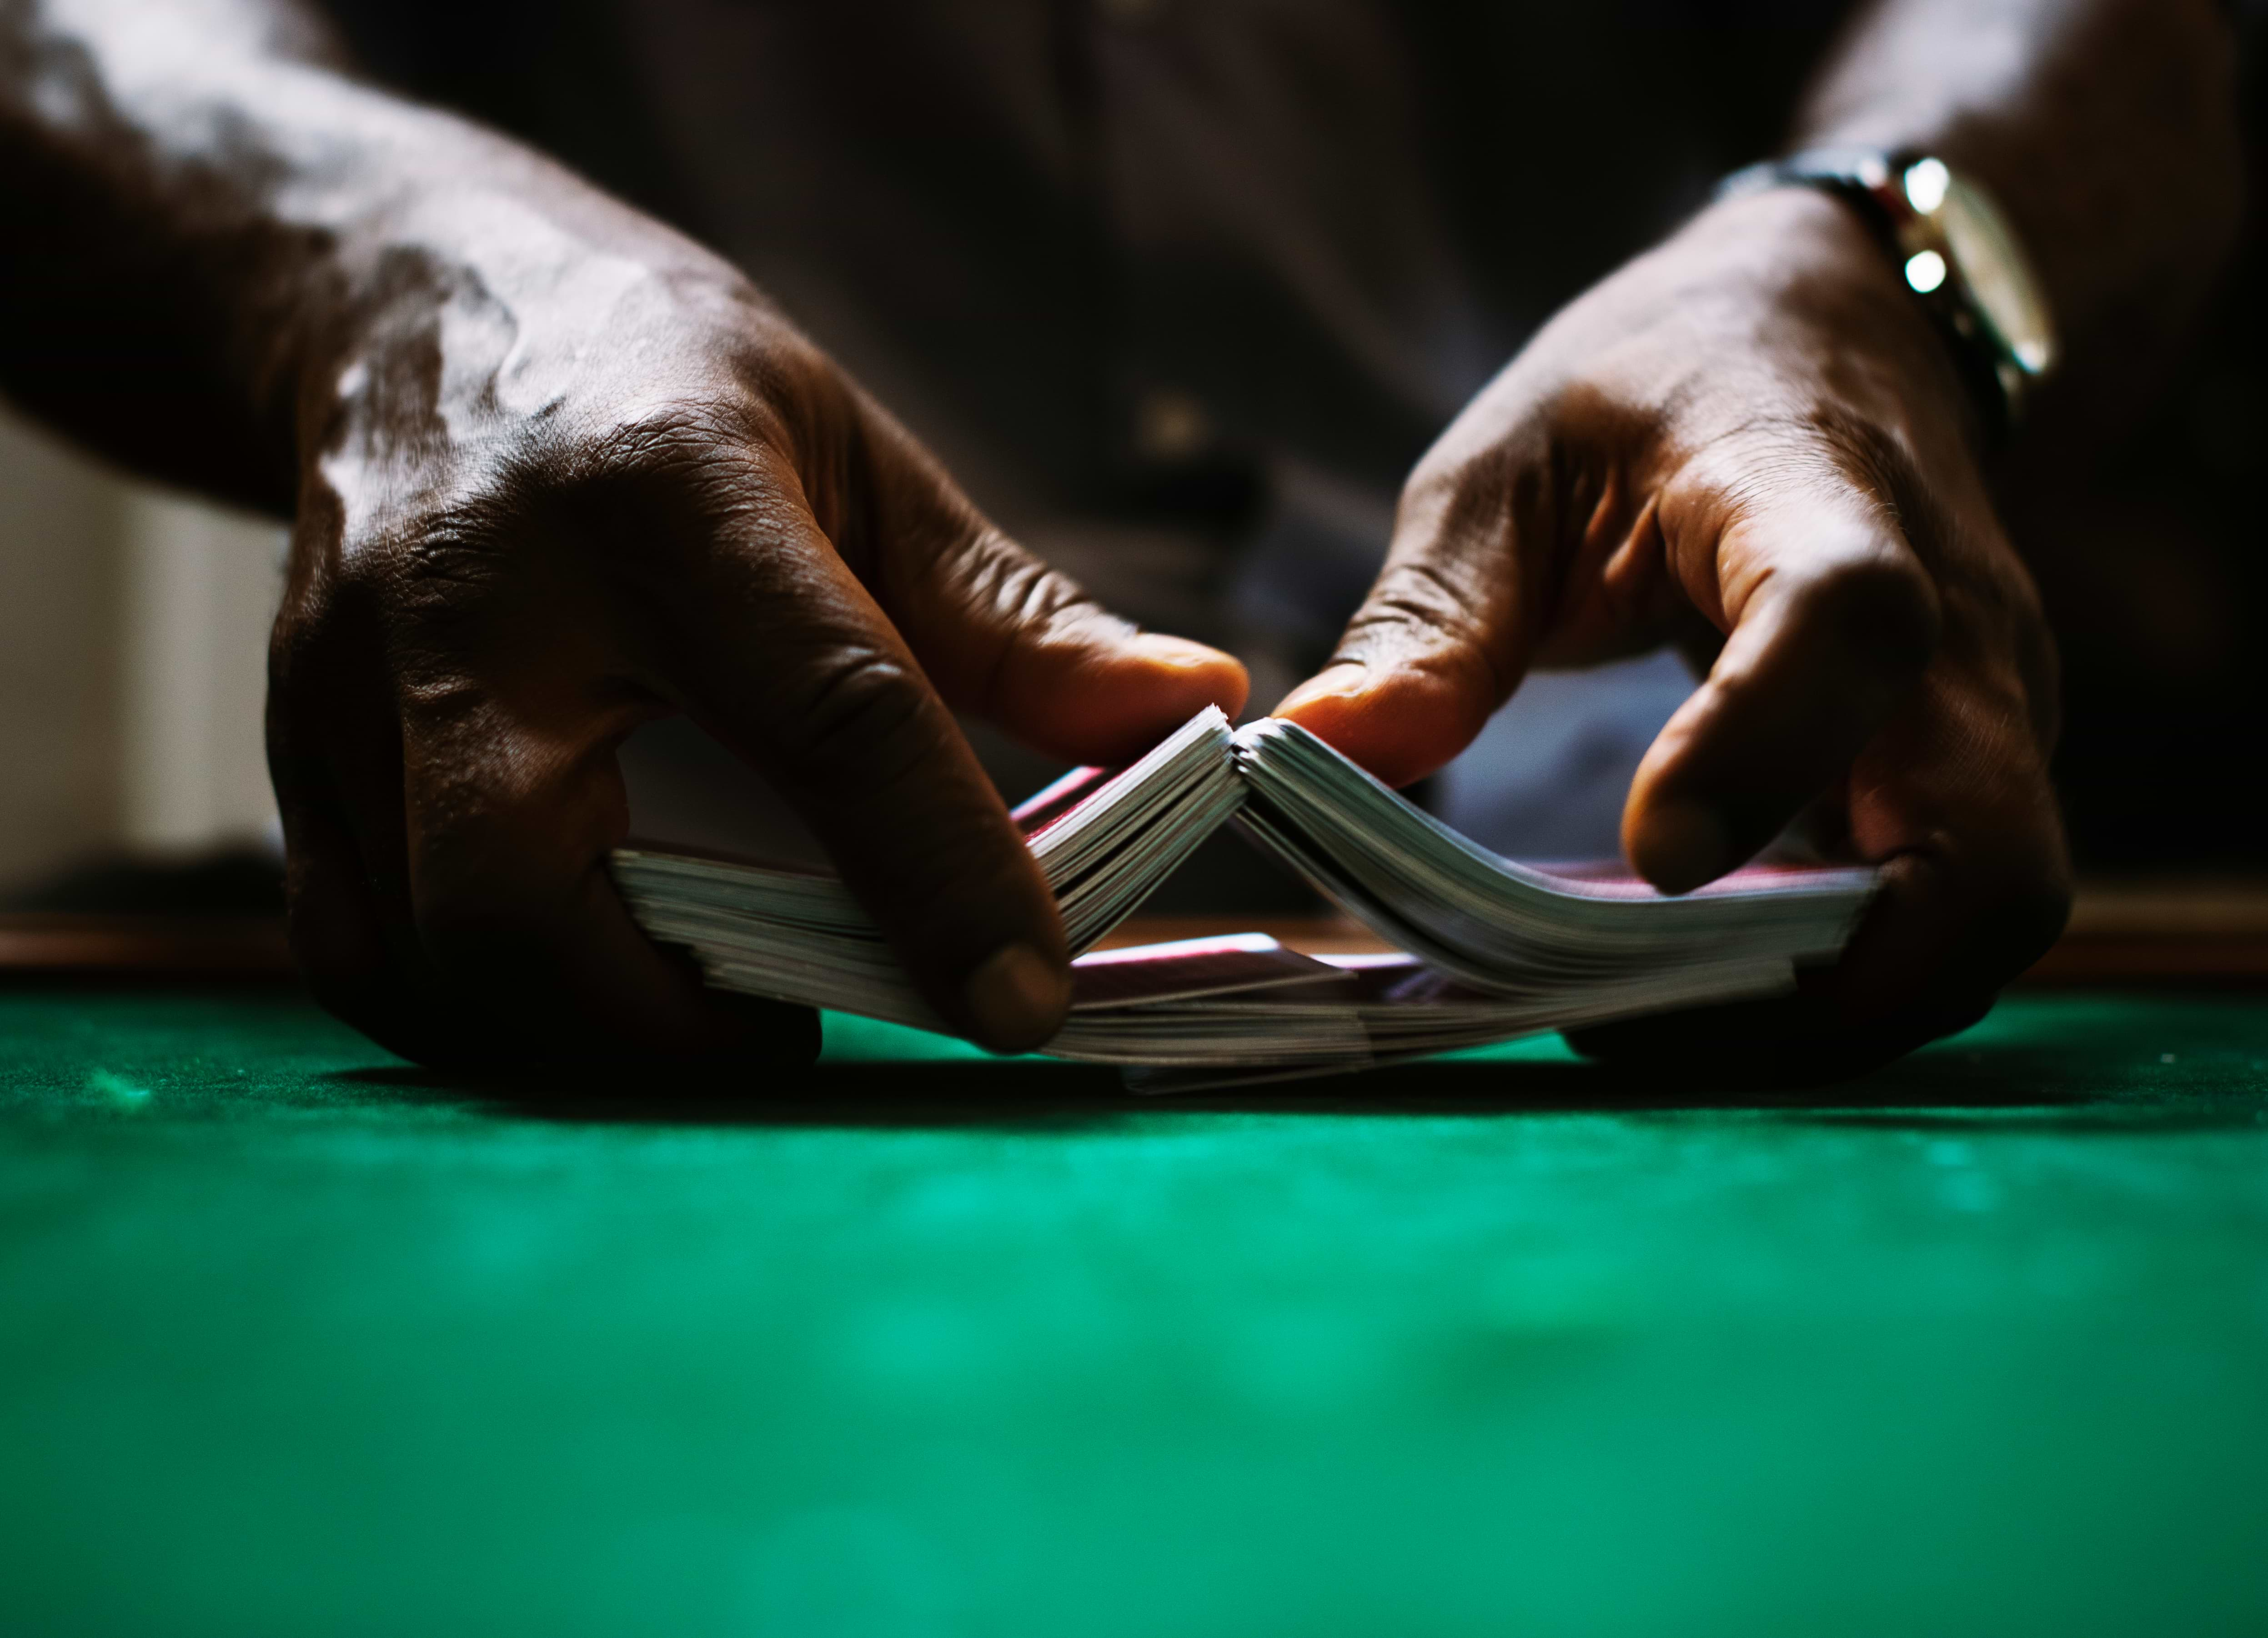 Ladylucks' Complete Blackjack Guide part 3 - How to choose your table